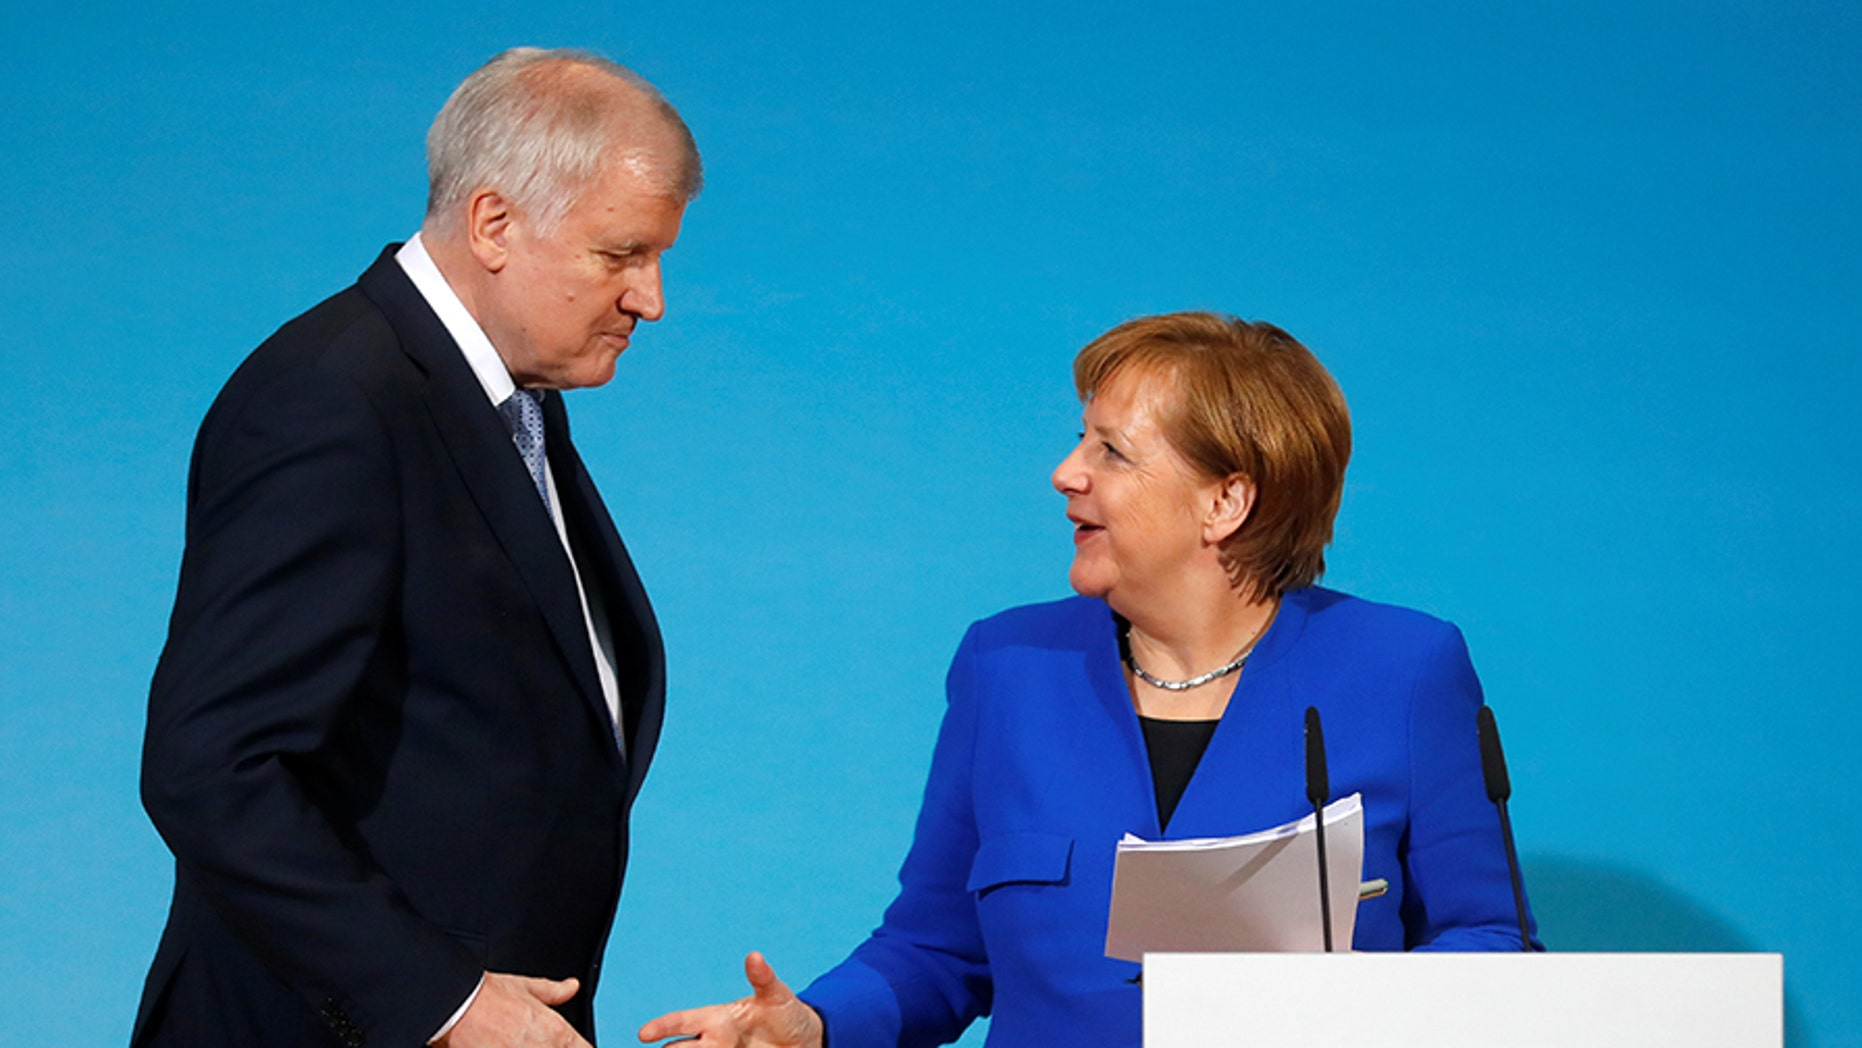 Interior Minister Horst Seehofer, seen here with Chancellor Angela Merkel, has promised a tougher line on migration.